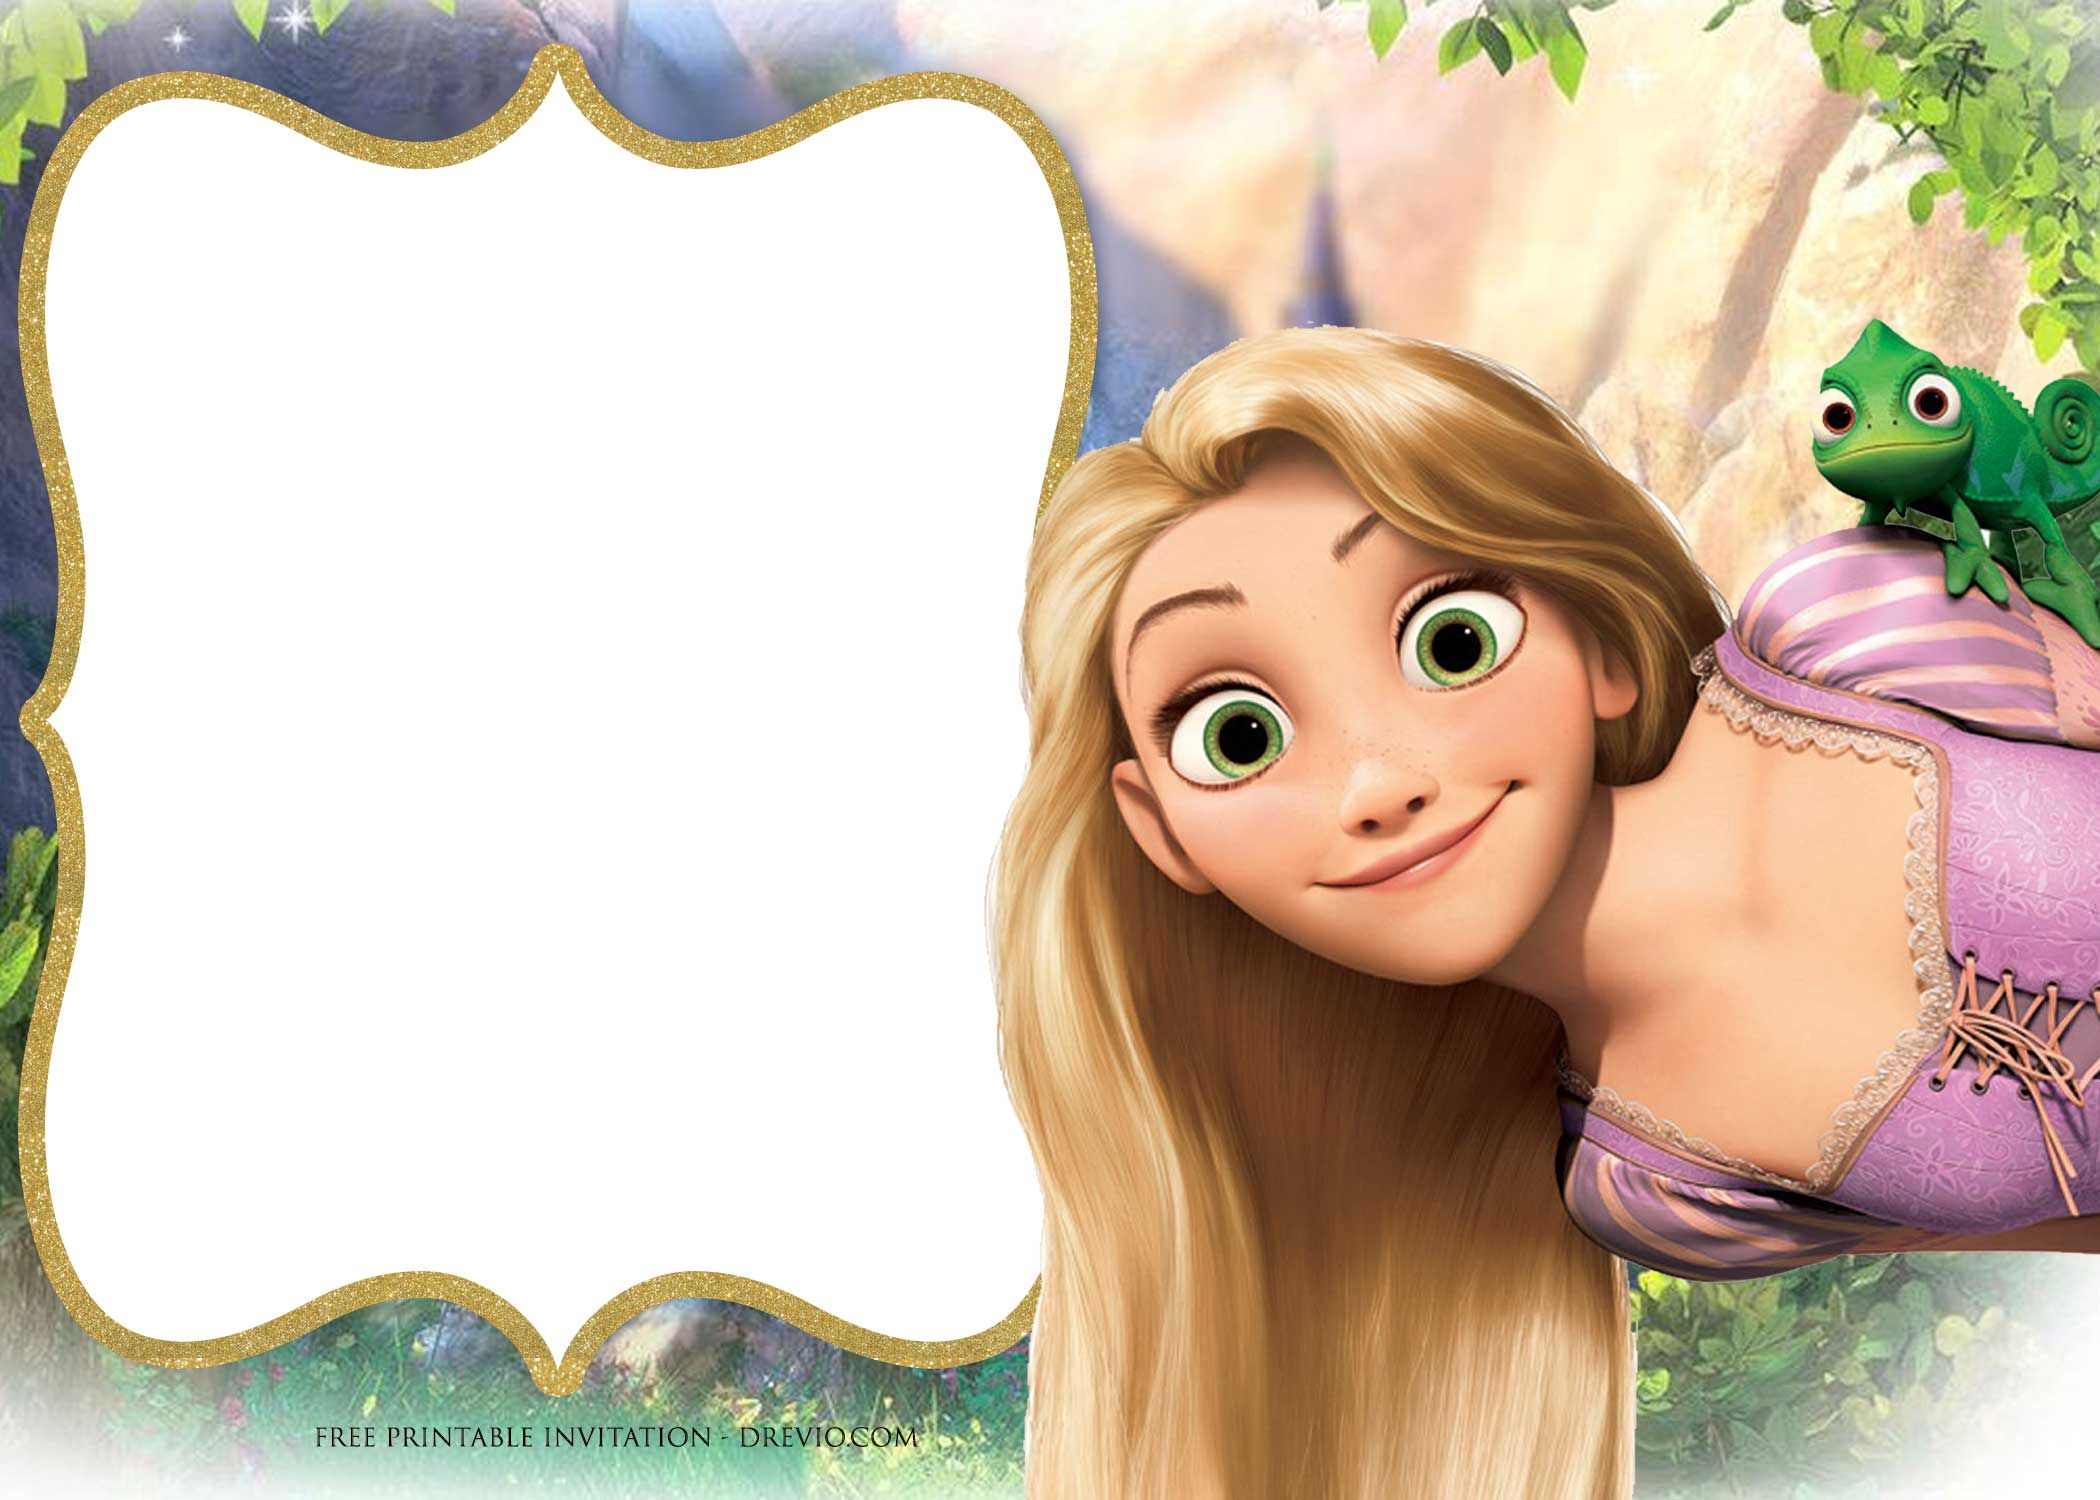 Download Now FREE Printable Princess Rapunzel Invitation Templates